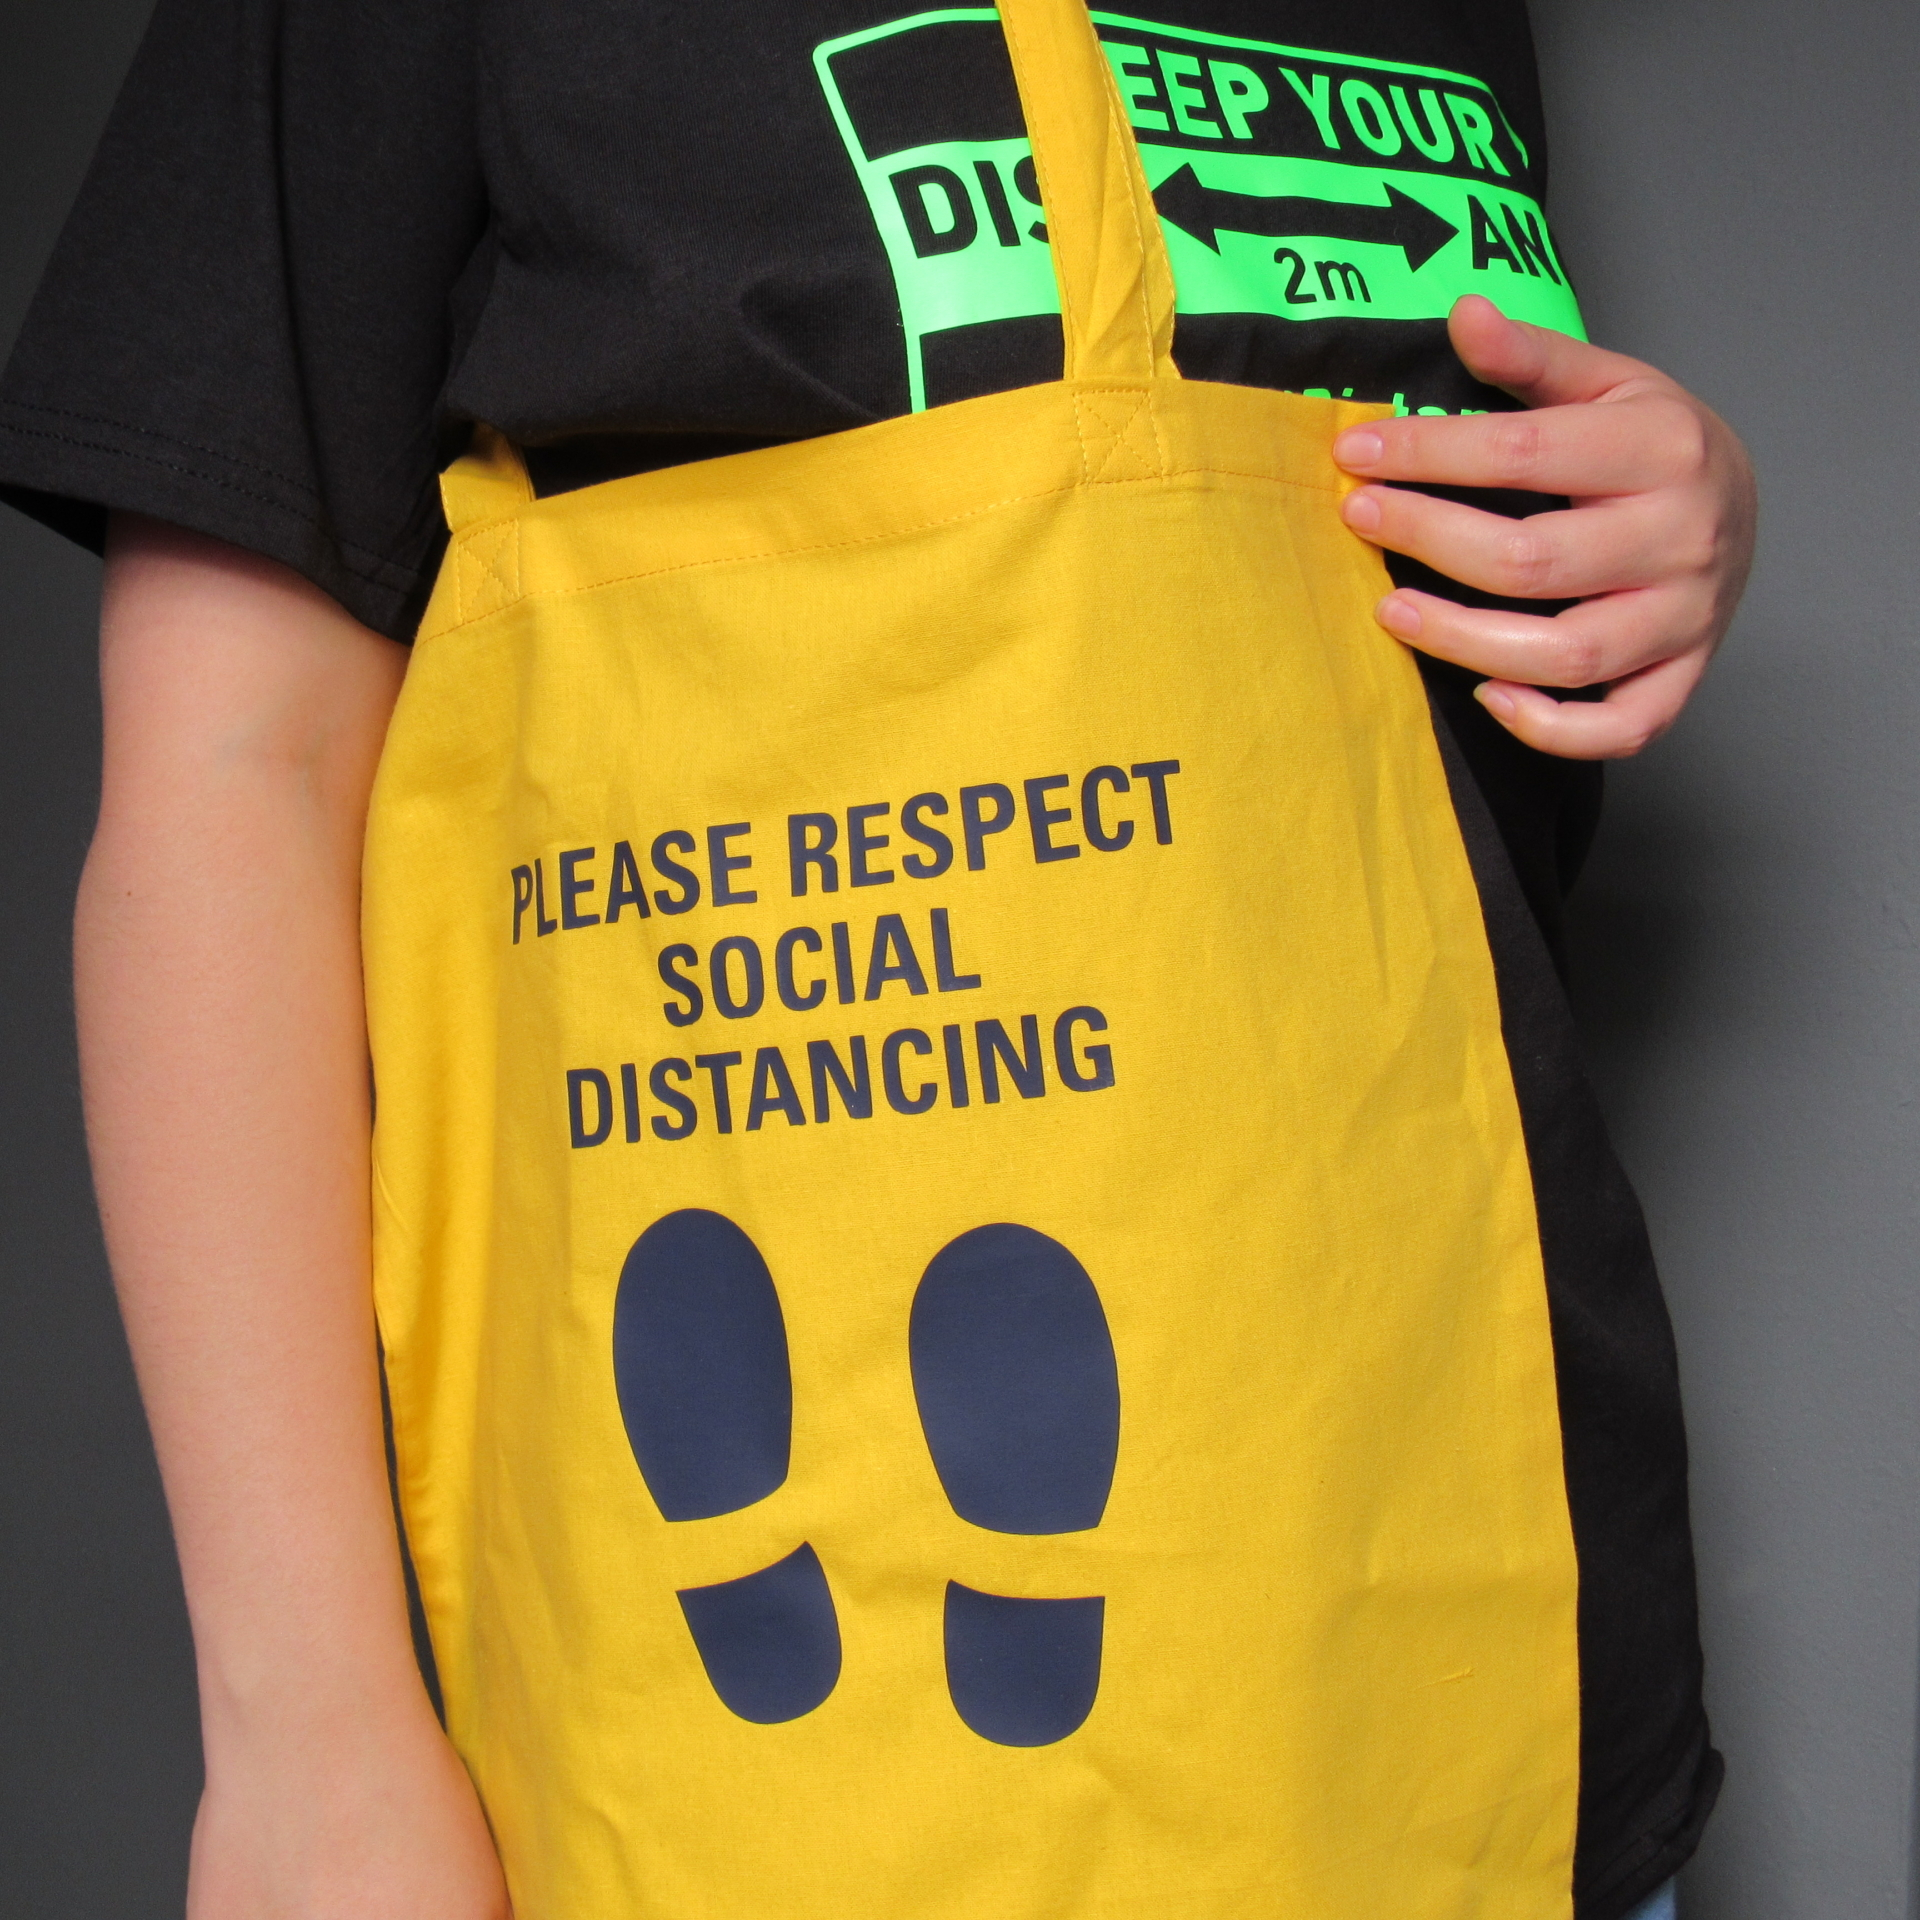 Respect Distancing on Yellow bag